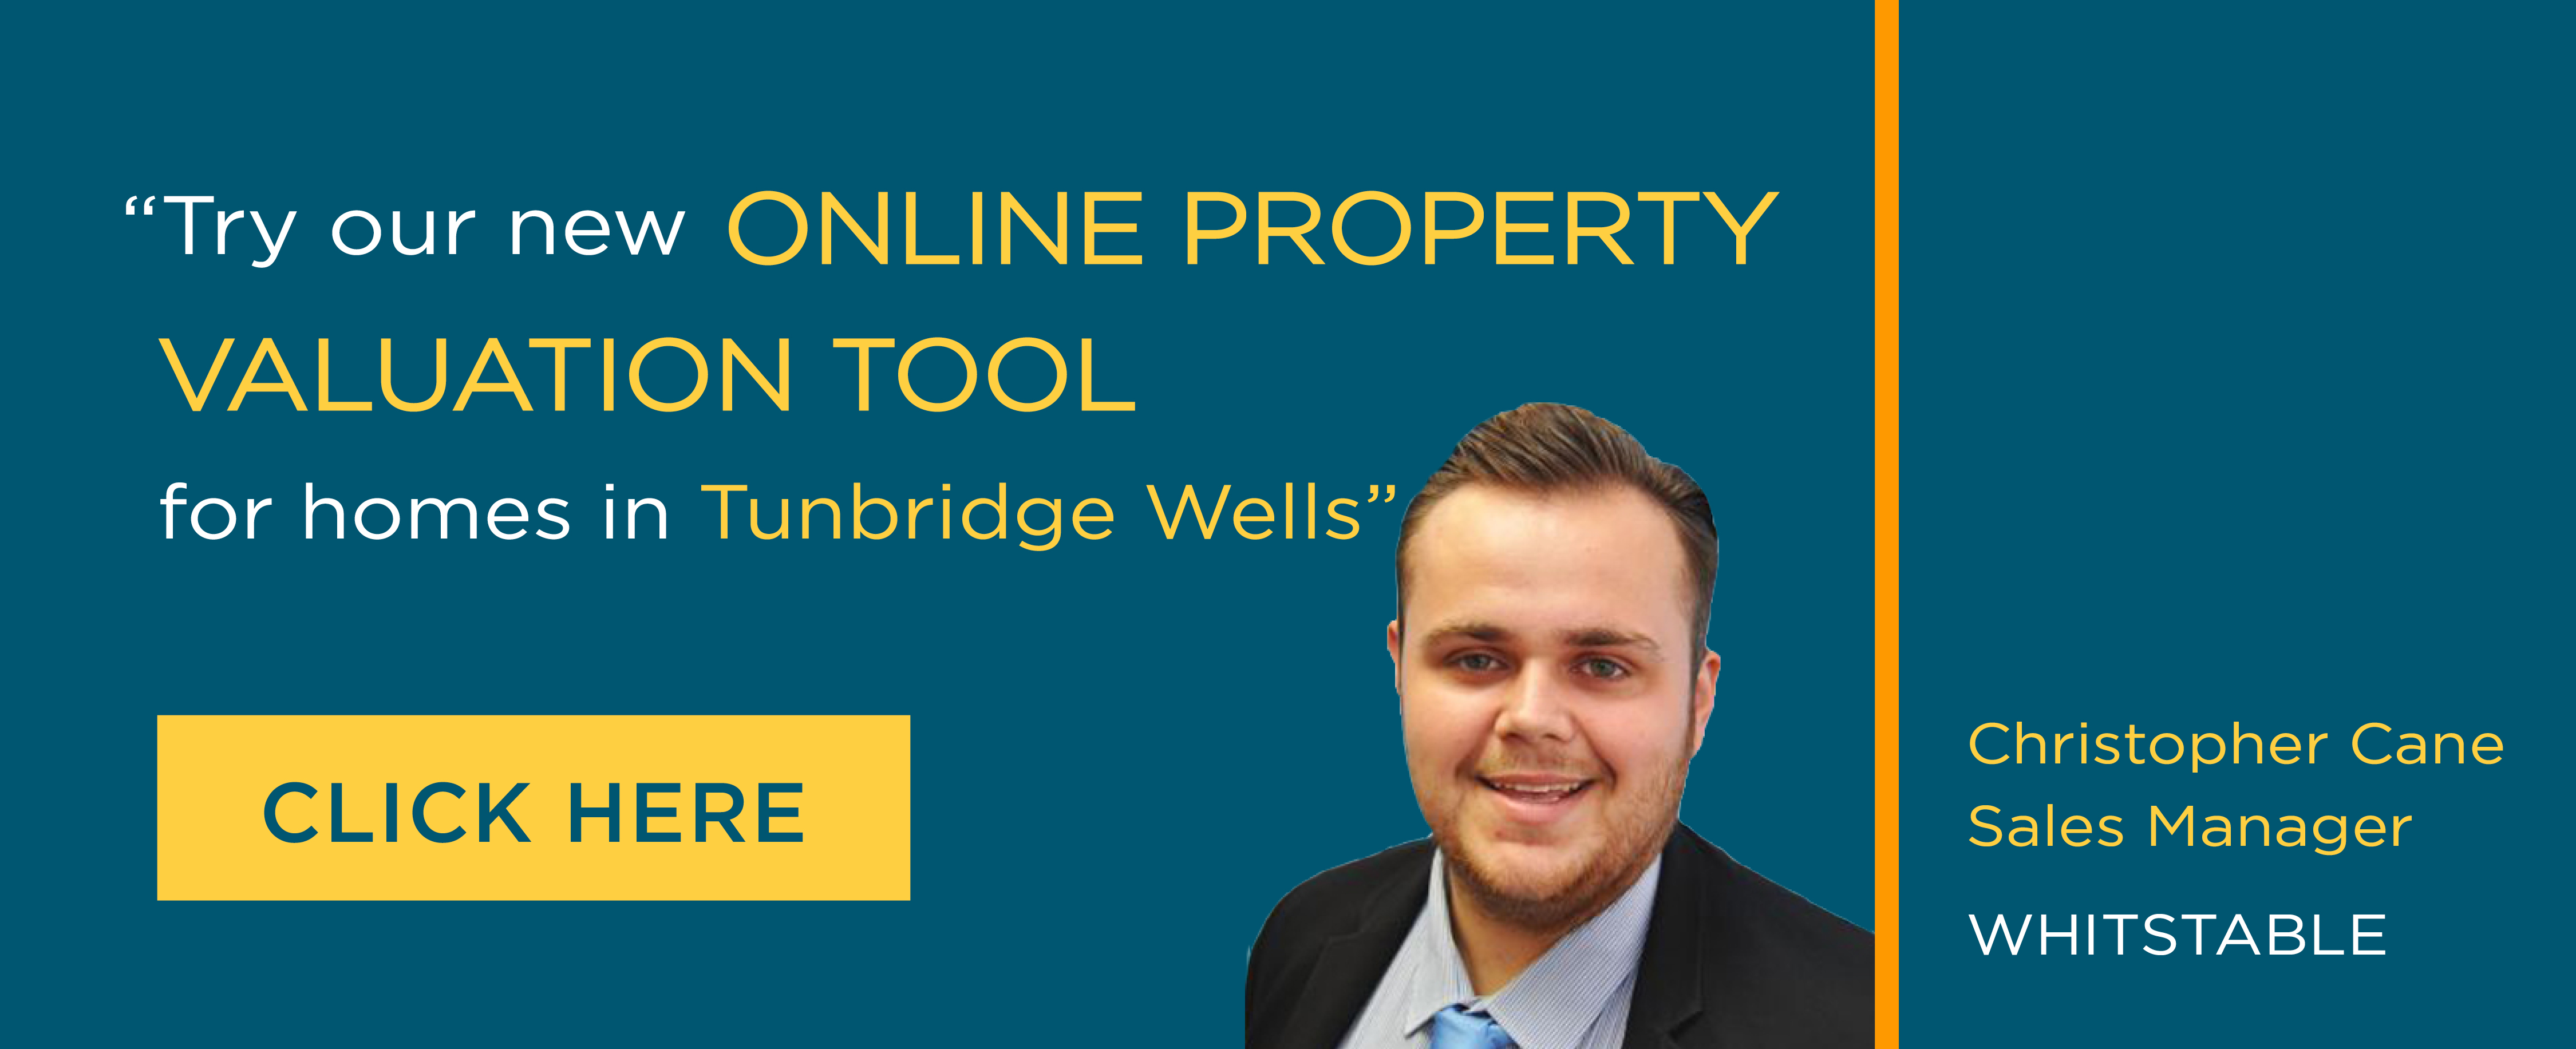 Online Valuation Tool website banner Whistable